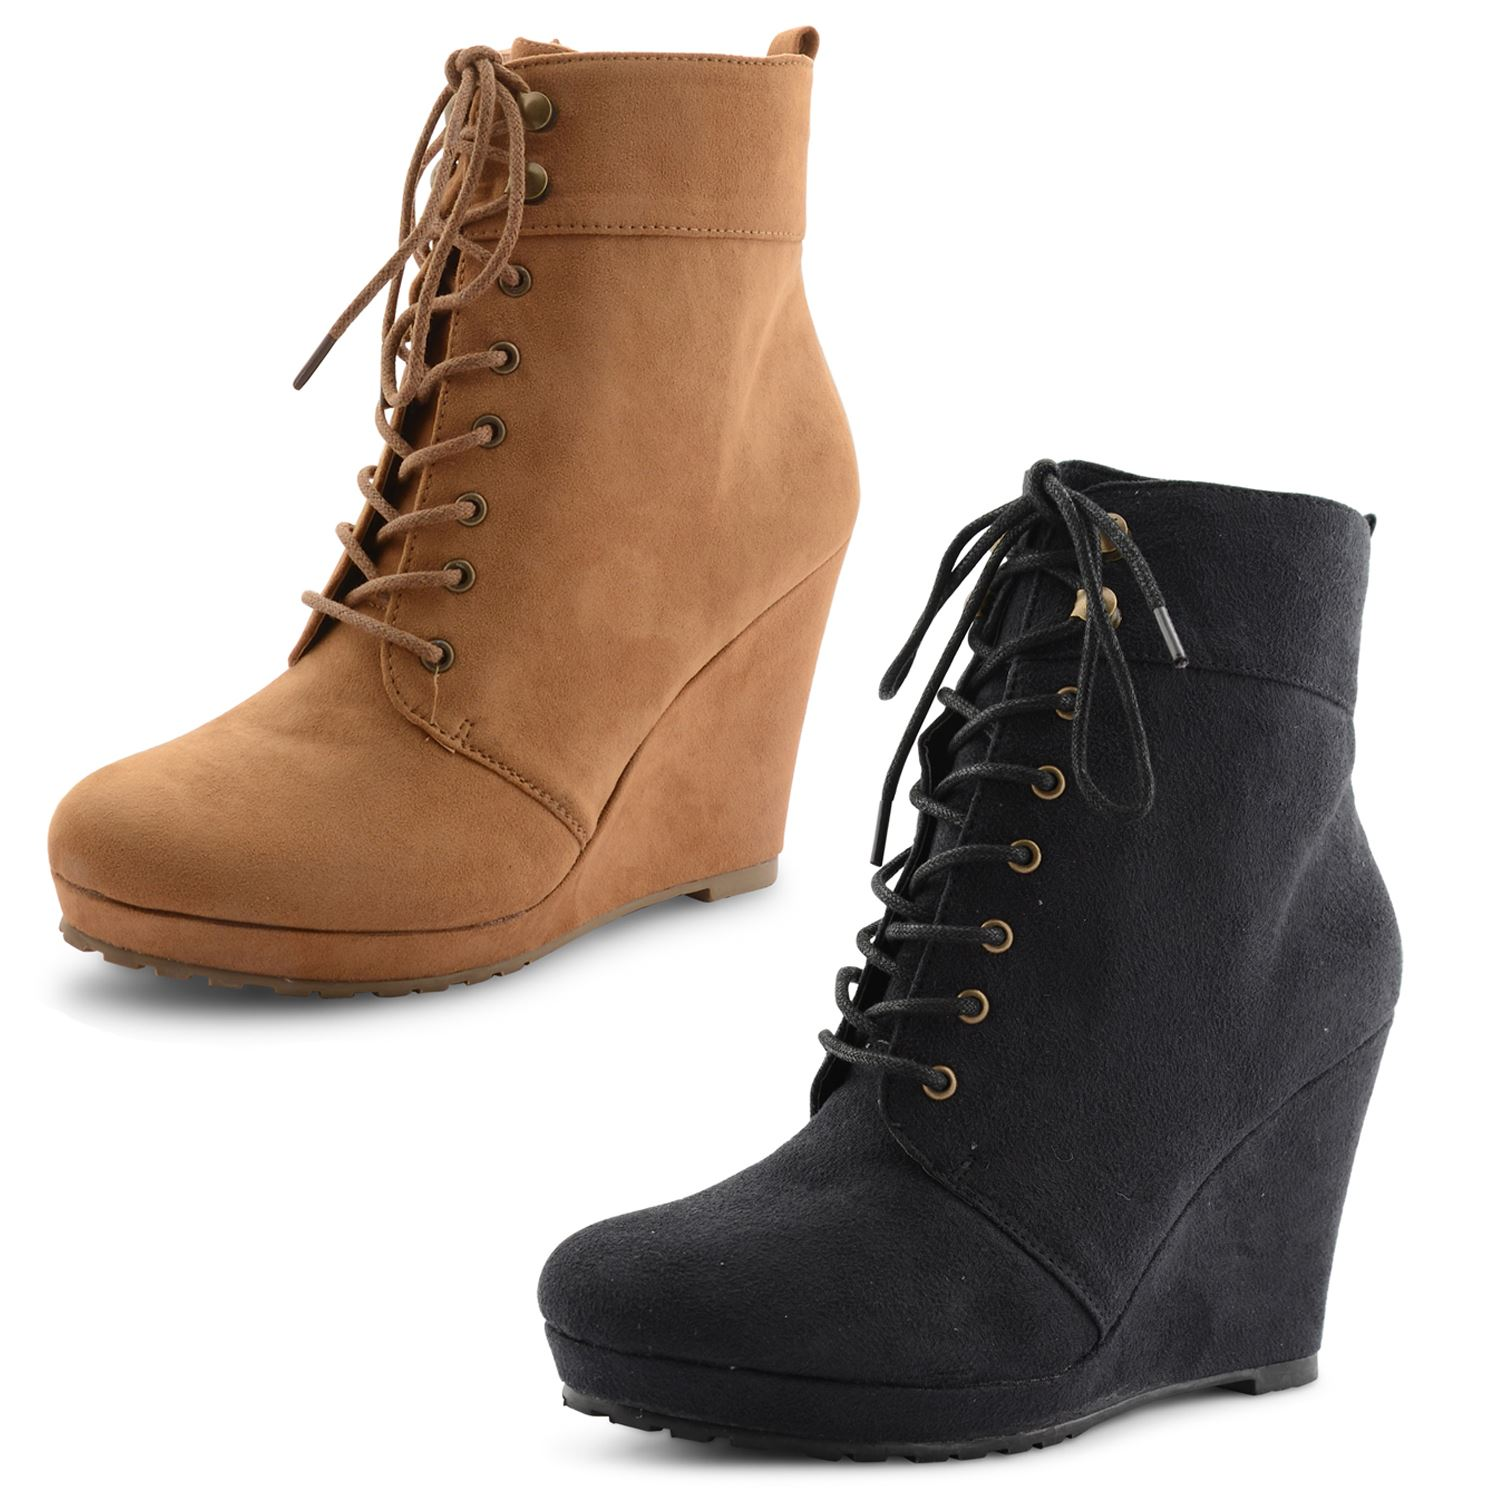 Winter Ankle Boots 1NxkbmTu